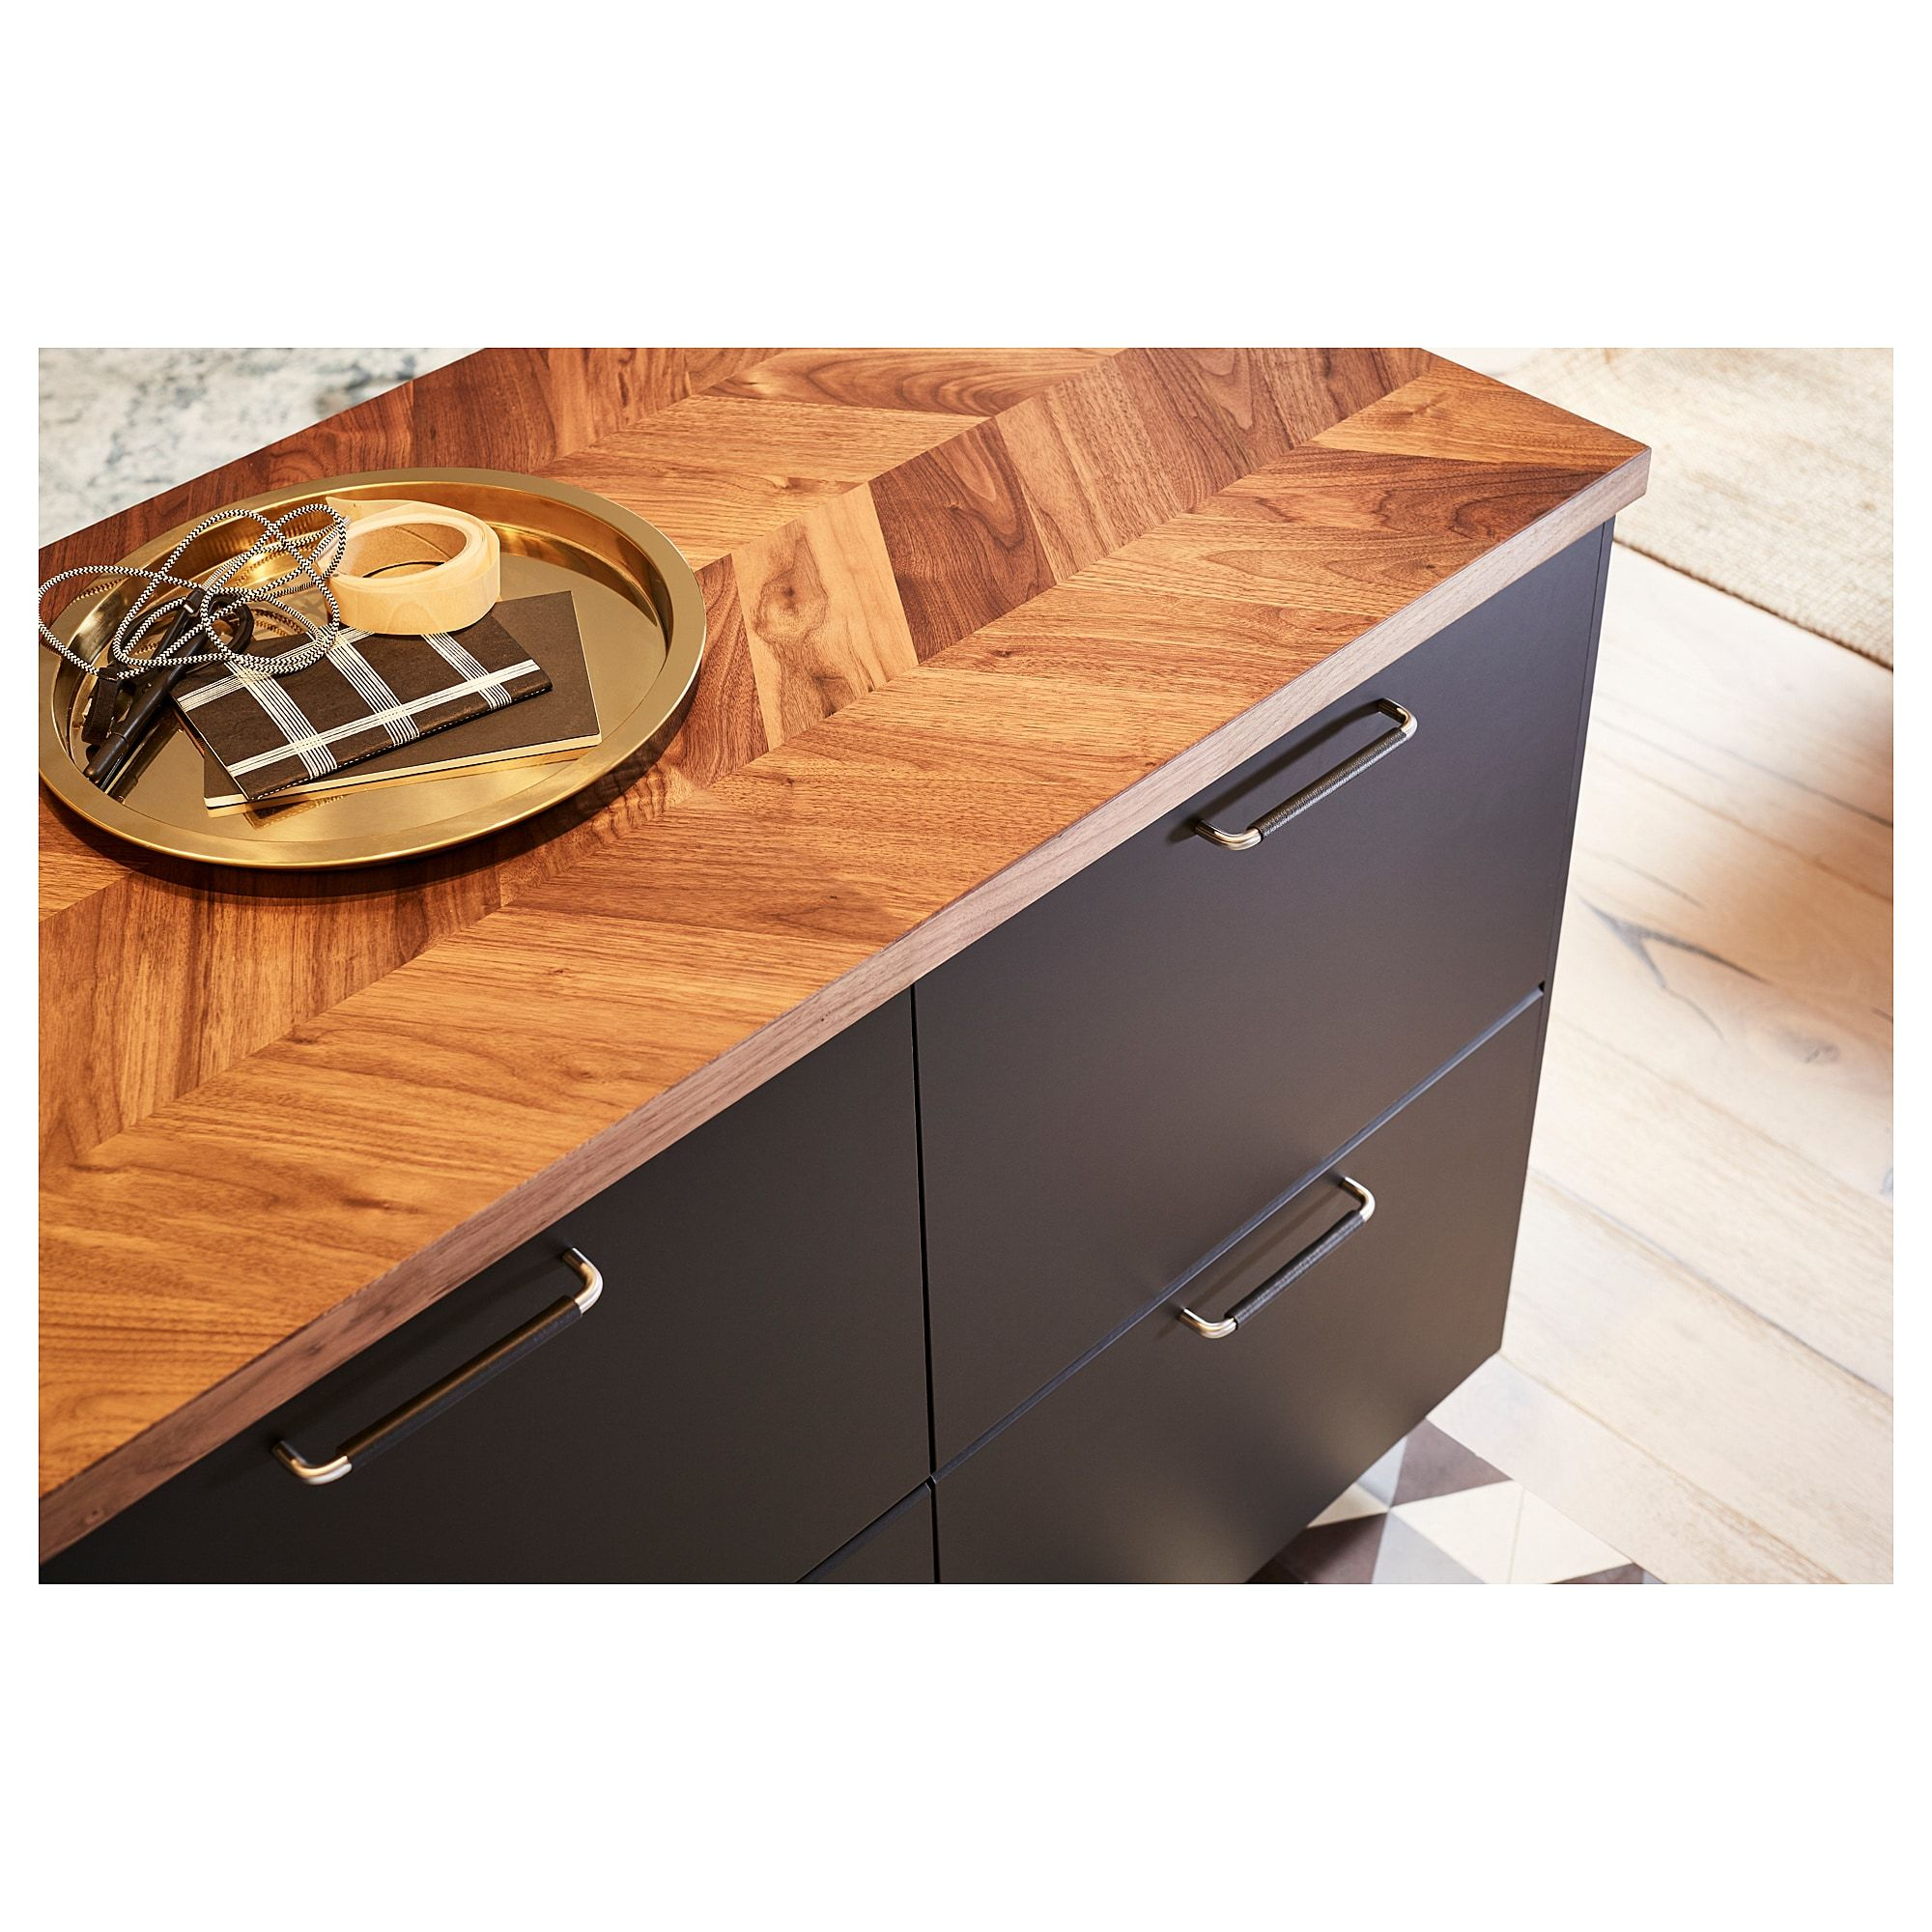 Barkaboda Countertop Walnut Veneer 74x1 1 2 188x3 8 Cm Countertops Wood Worktop Wood Countertops